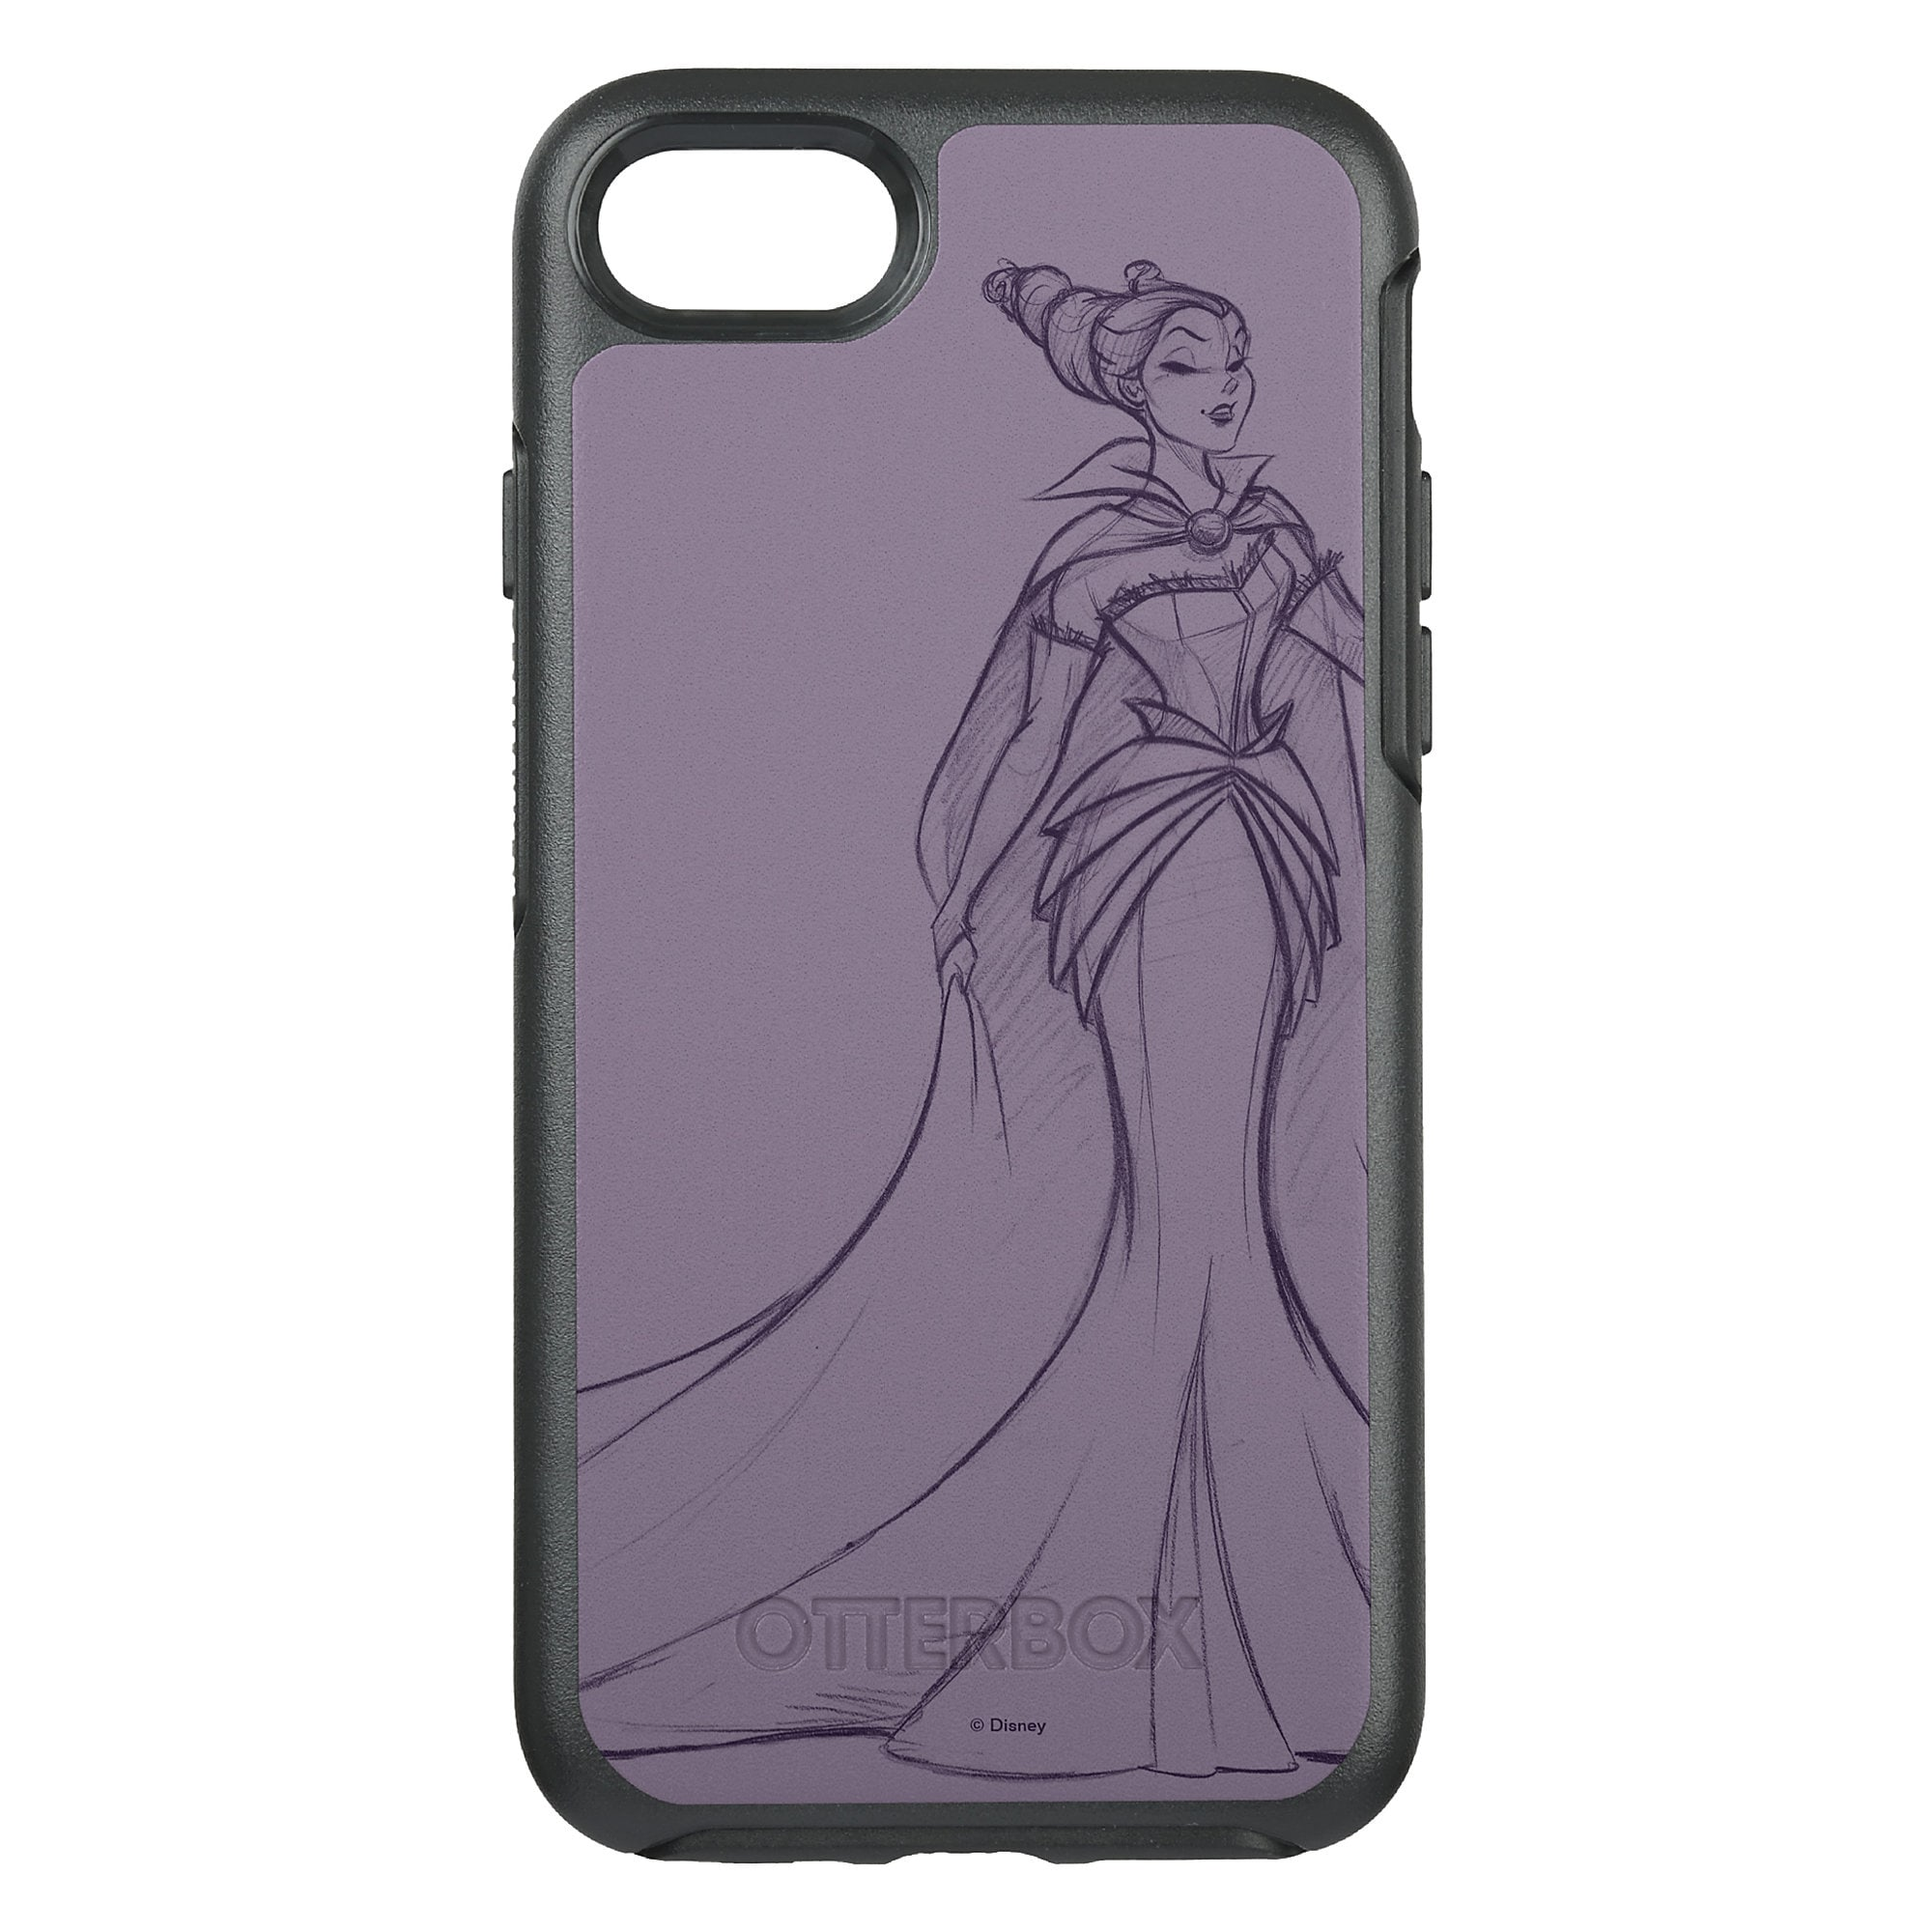 Maleficent OtterBox Symmetry iPhone 8/7 Case - Art of Disney Villains Designer Collection